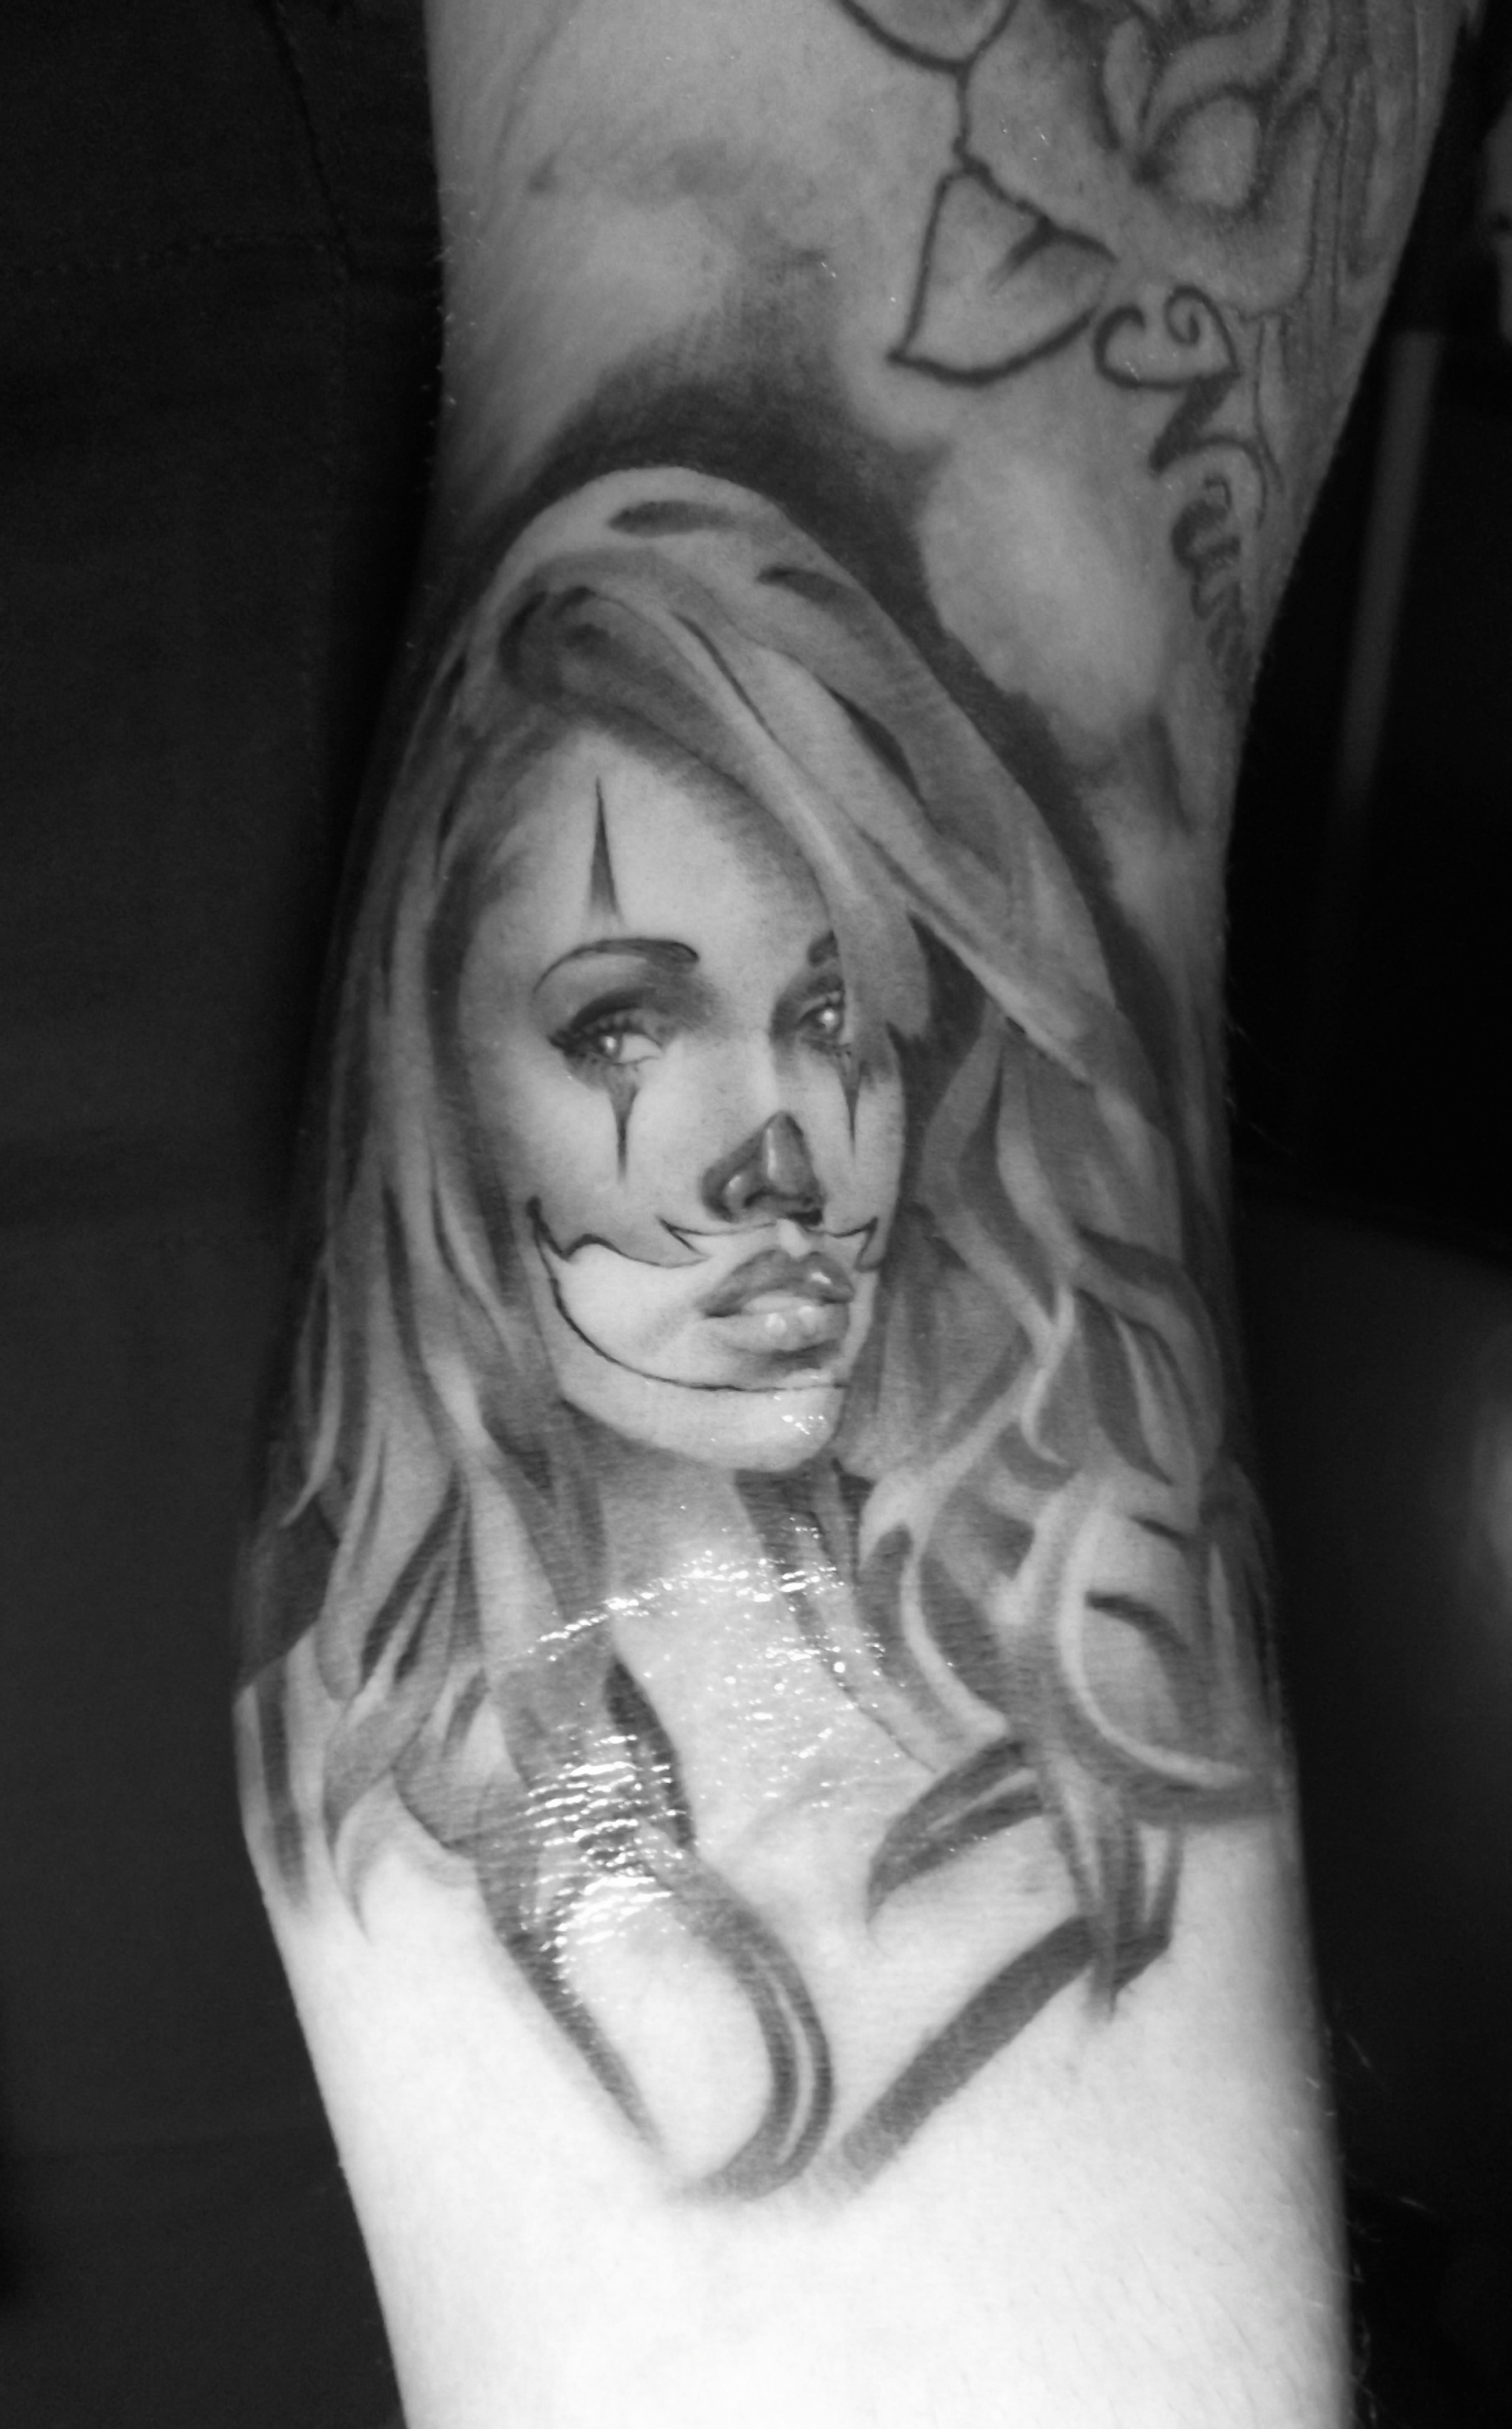 from Thatcher tattoo outlines of nude girls